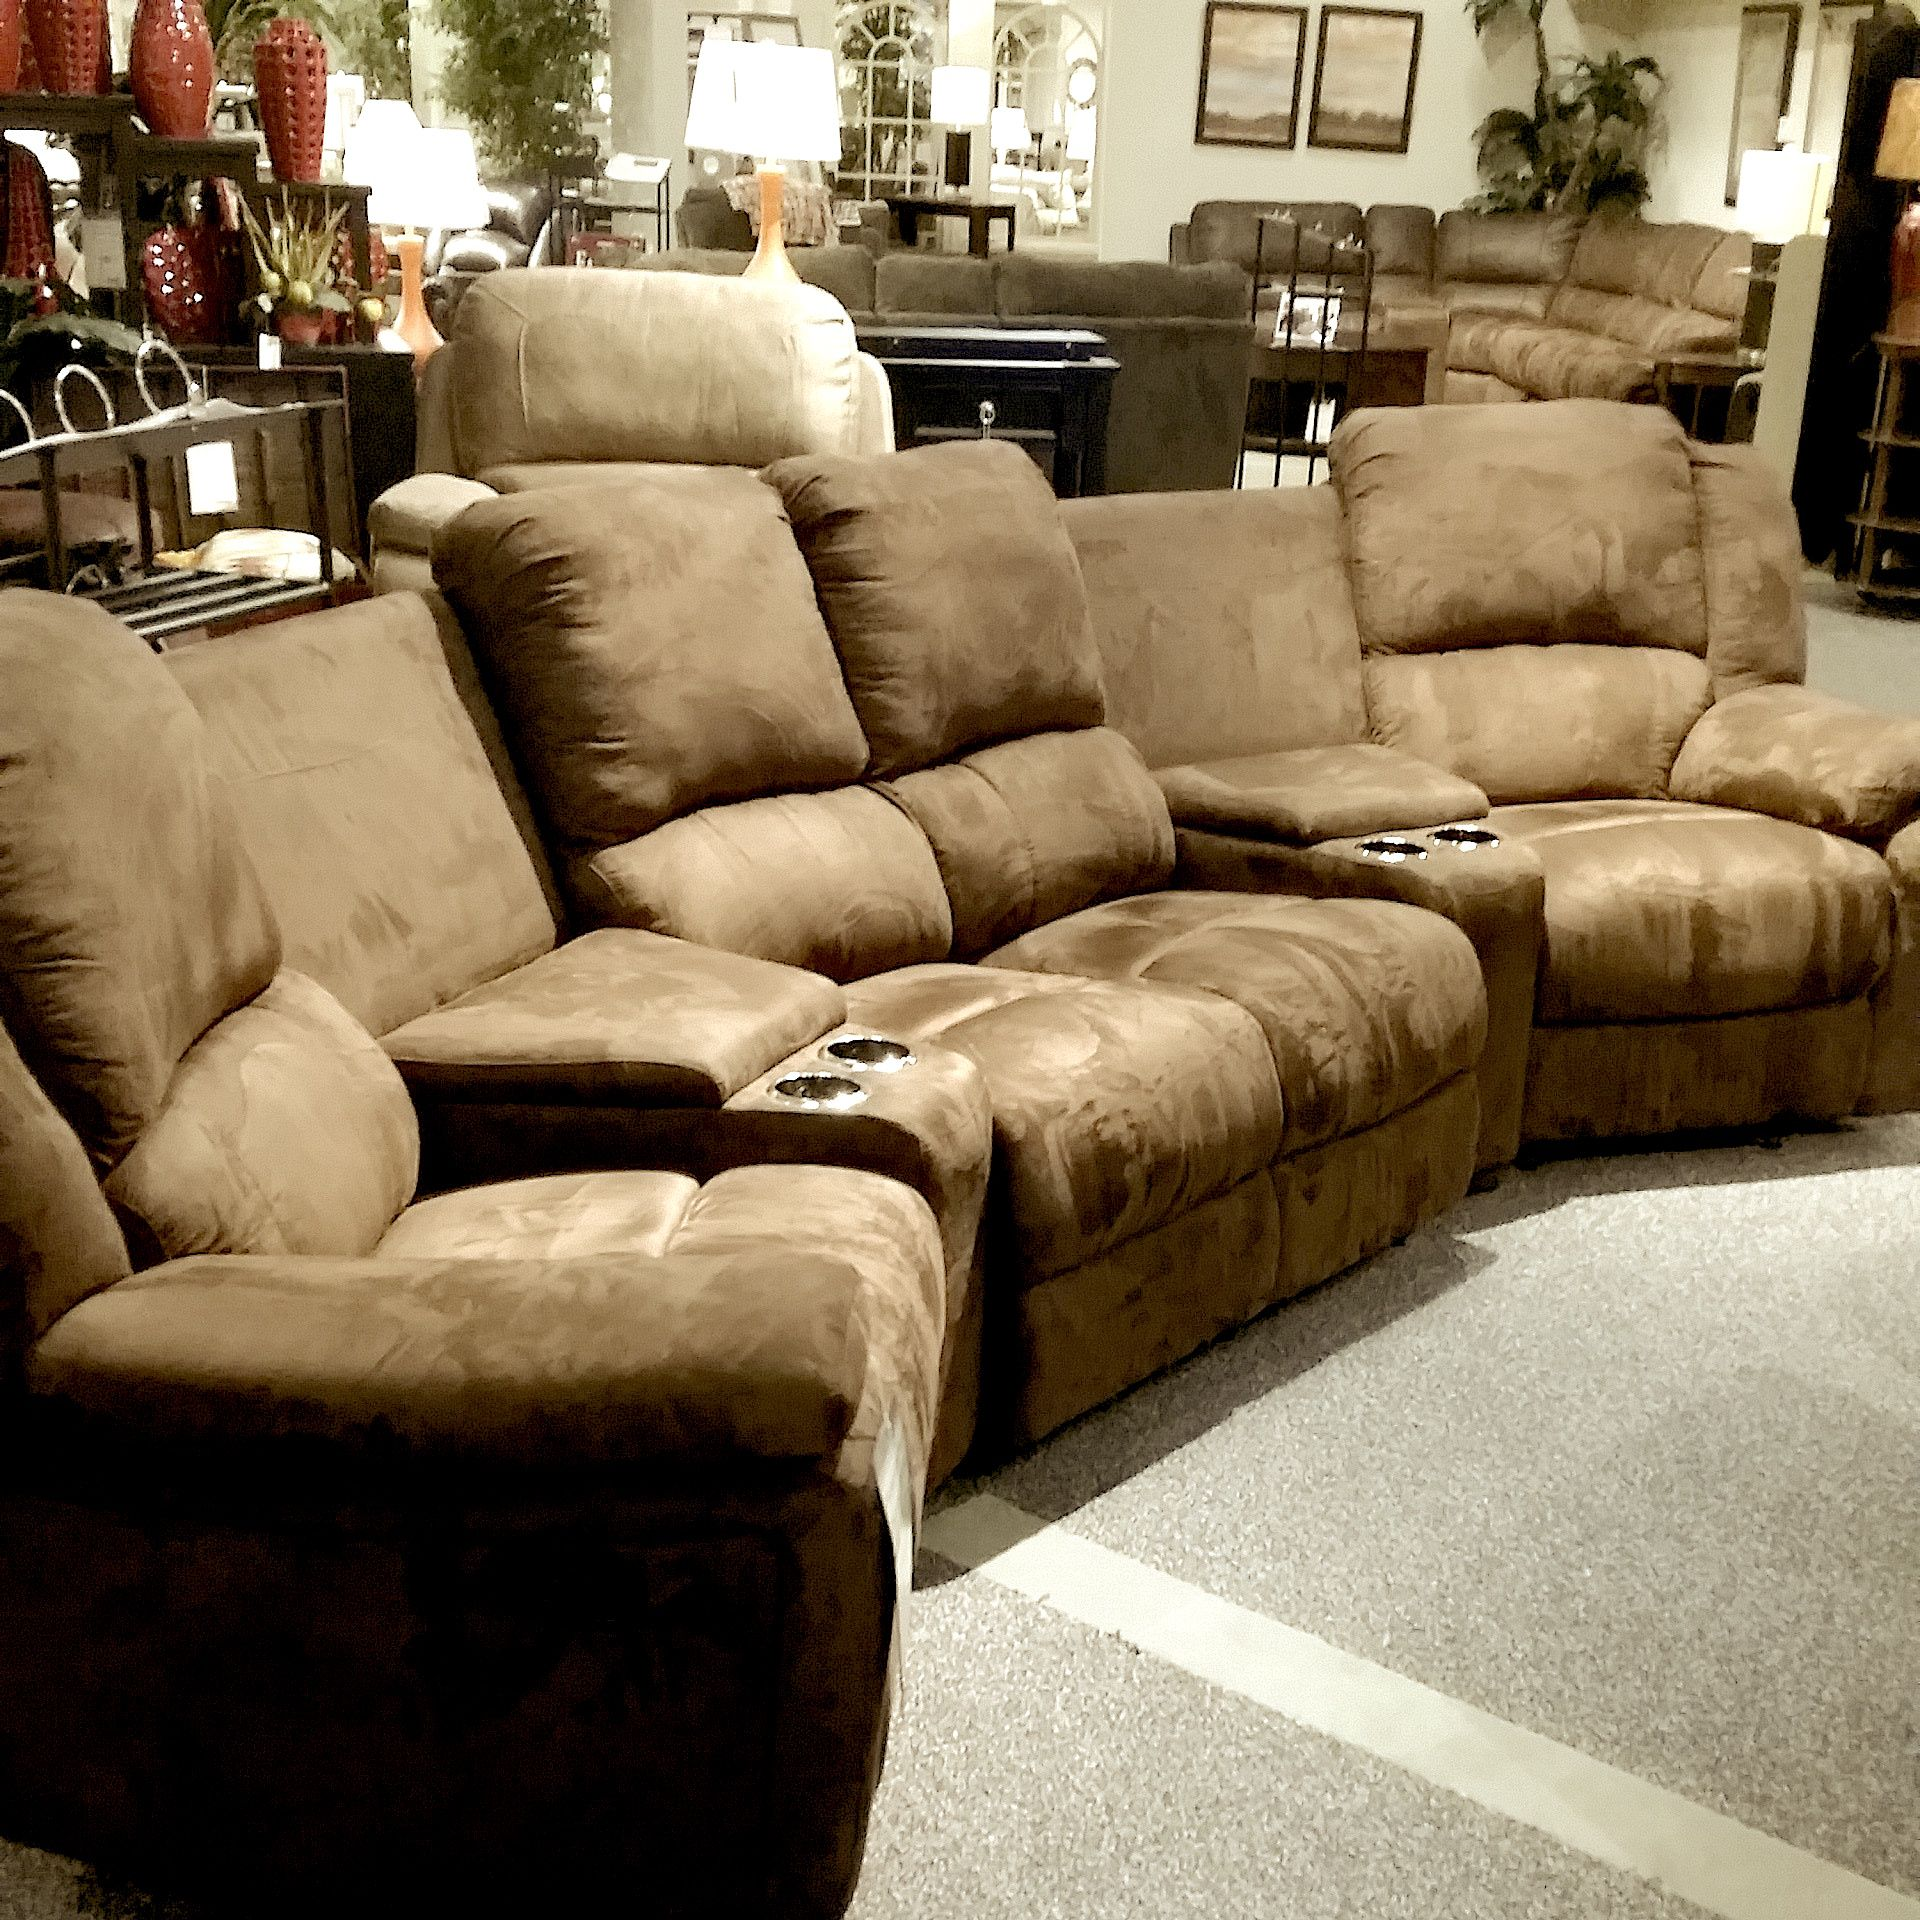 Comfortable Recliner Couches comfortable recliner couches - creditrestore